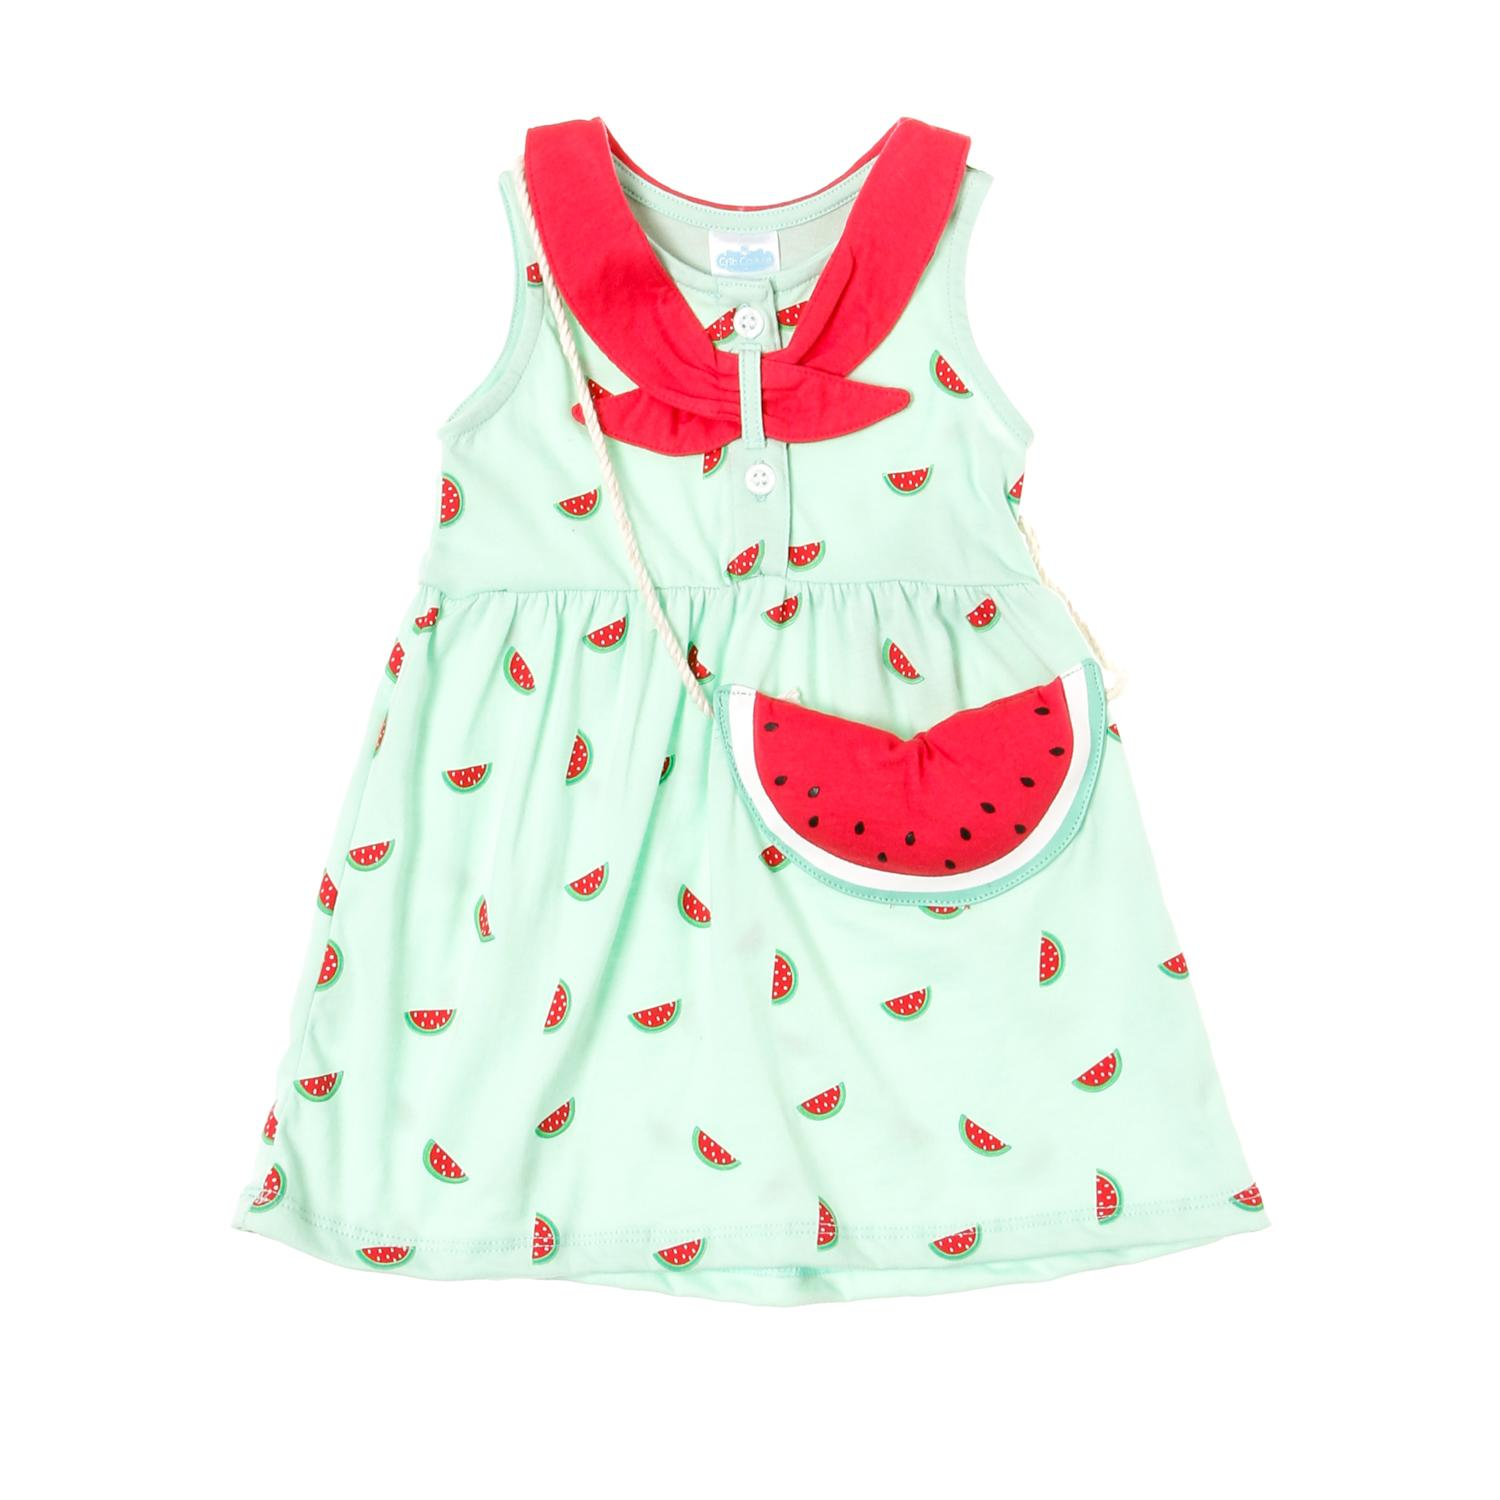 e12a515fdf Girls Dresses for sale - Baby Dresses for Girls Online Deals ...